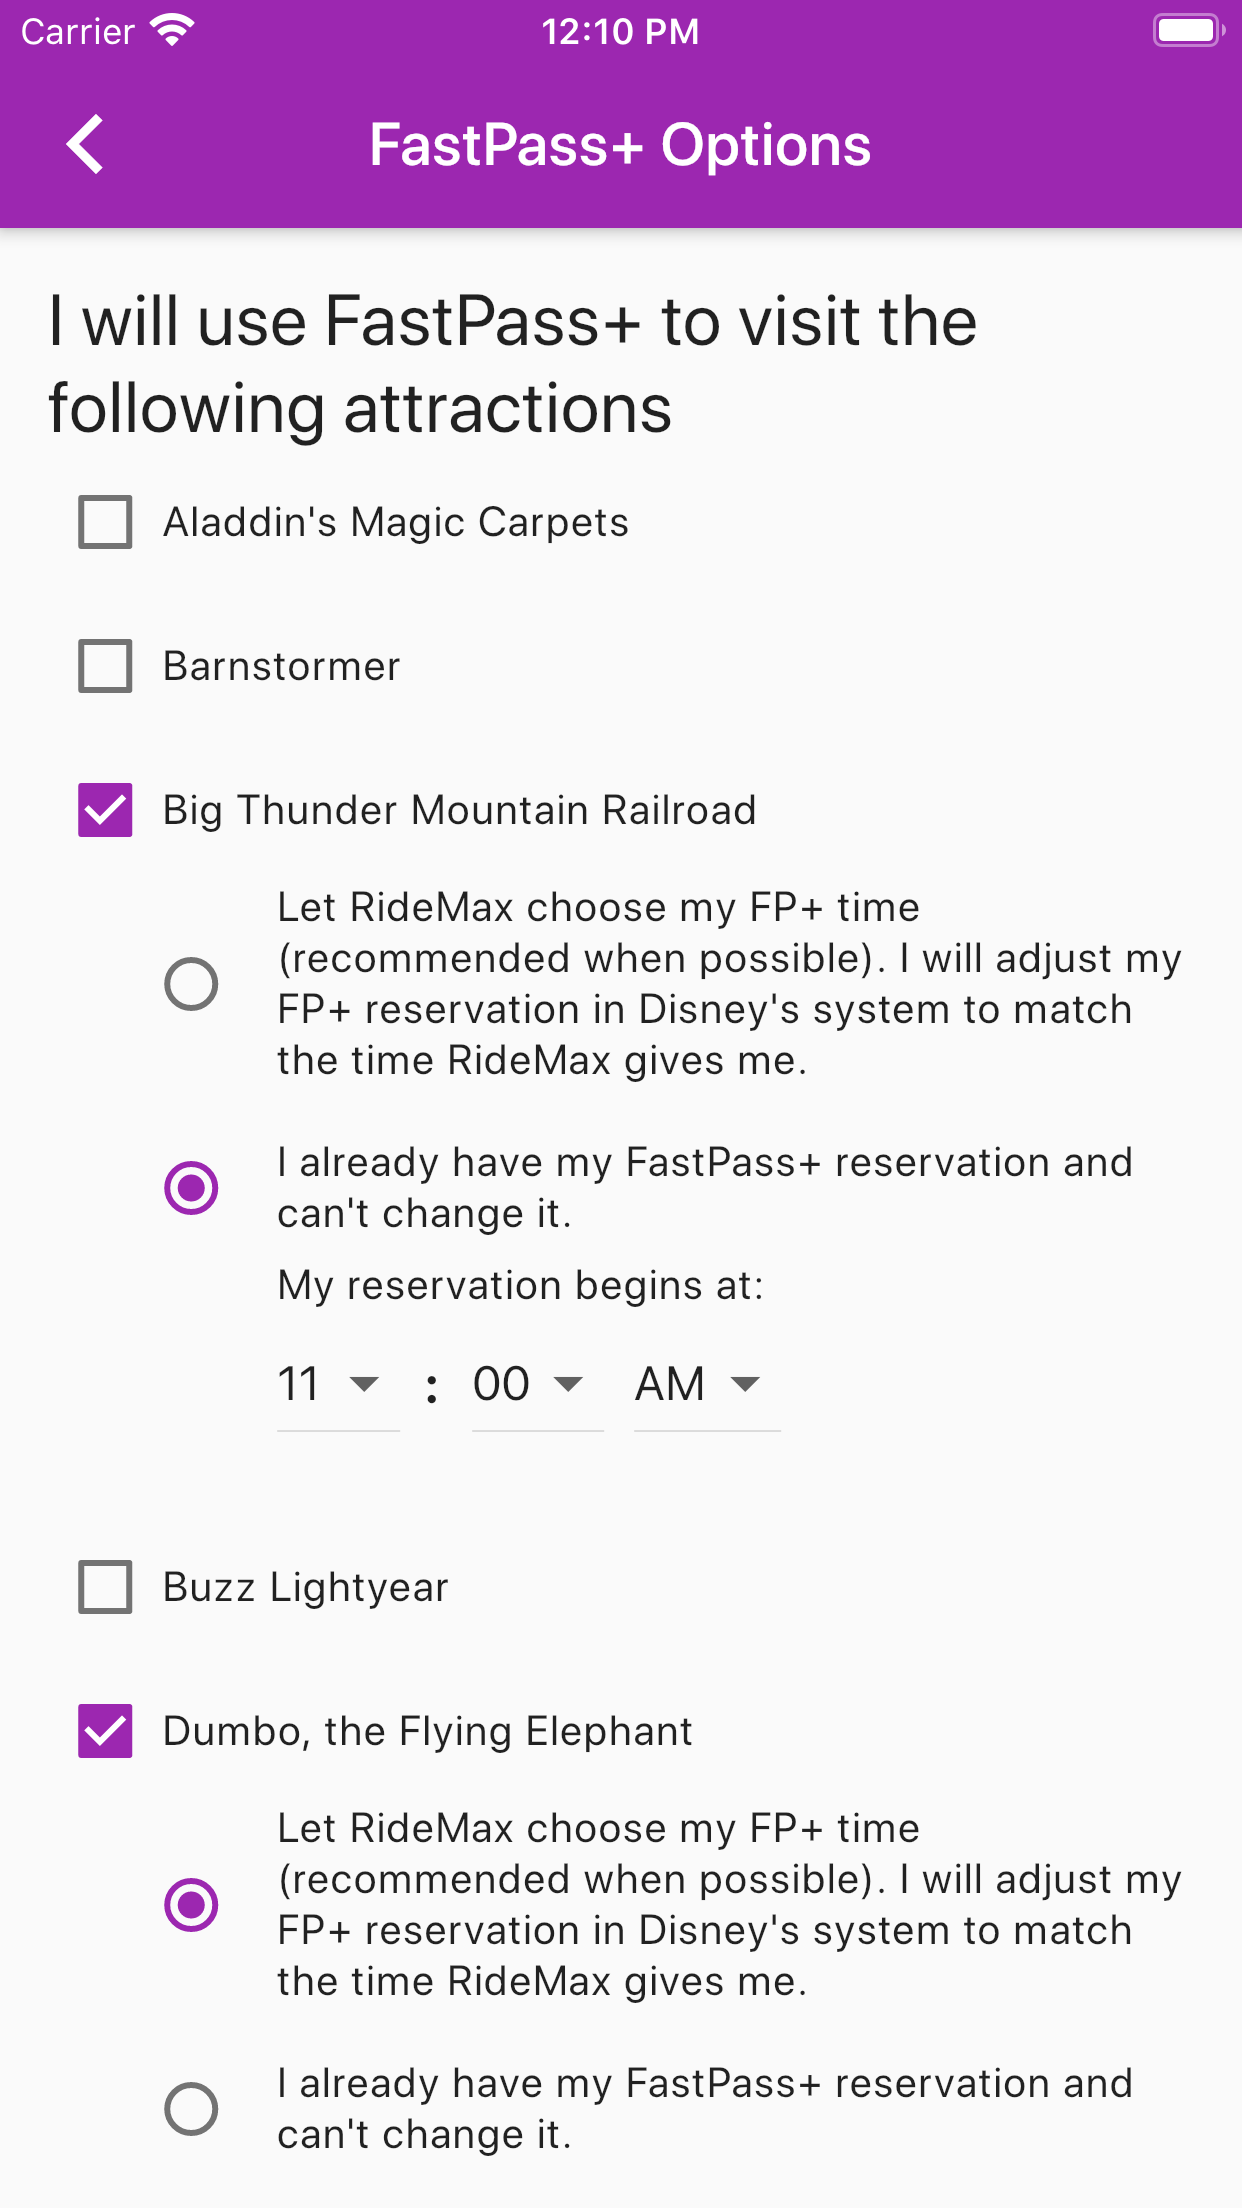 RideMax App - FastPass+ Options